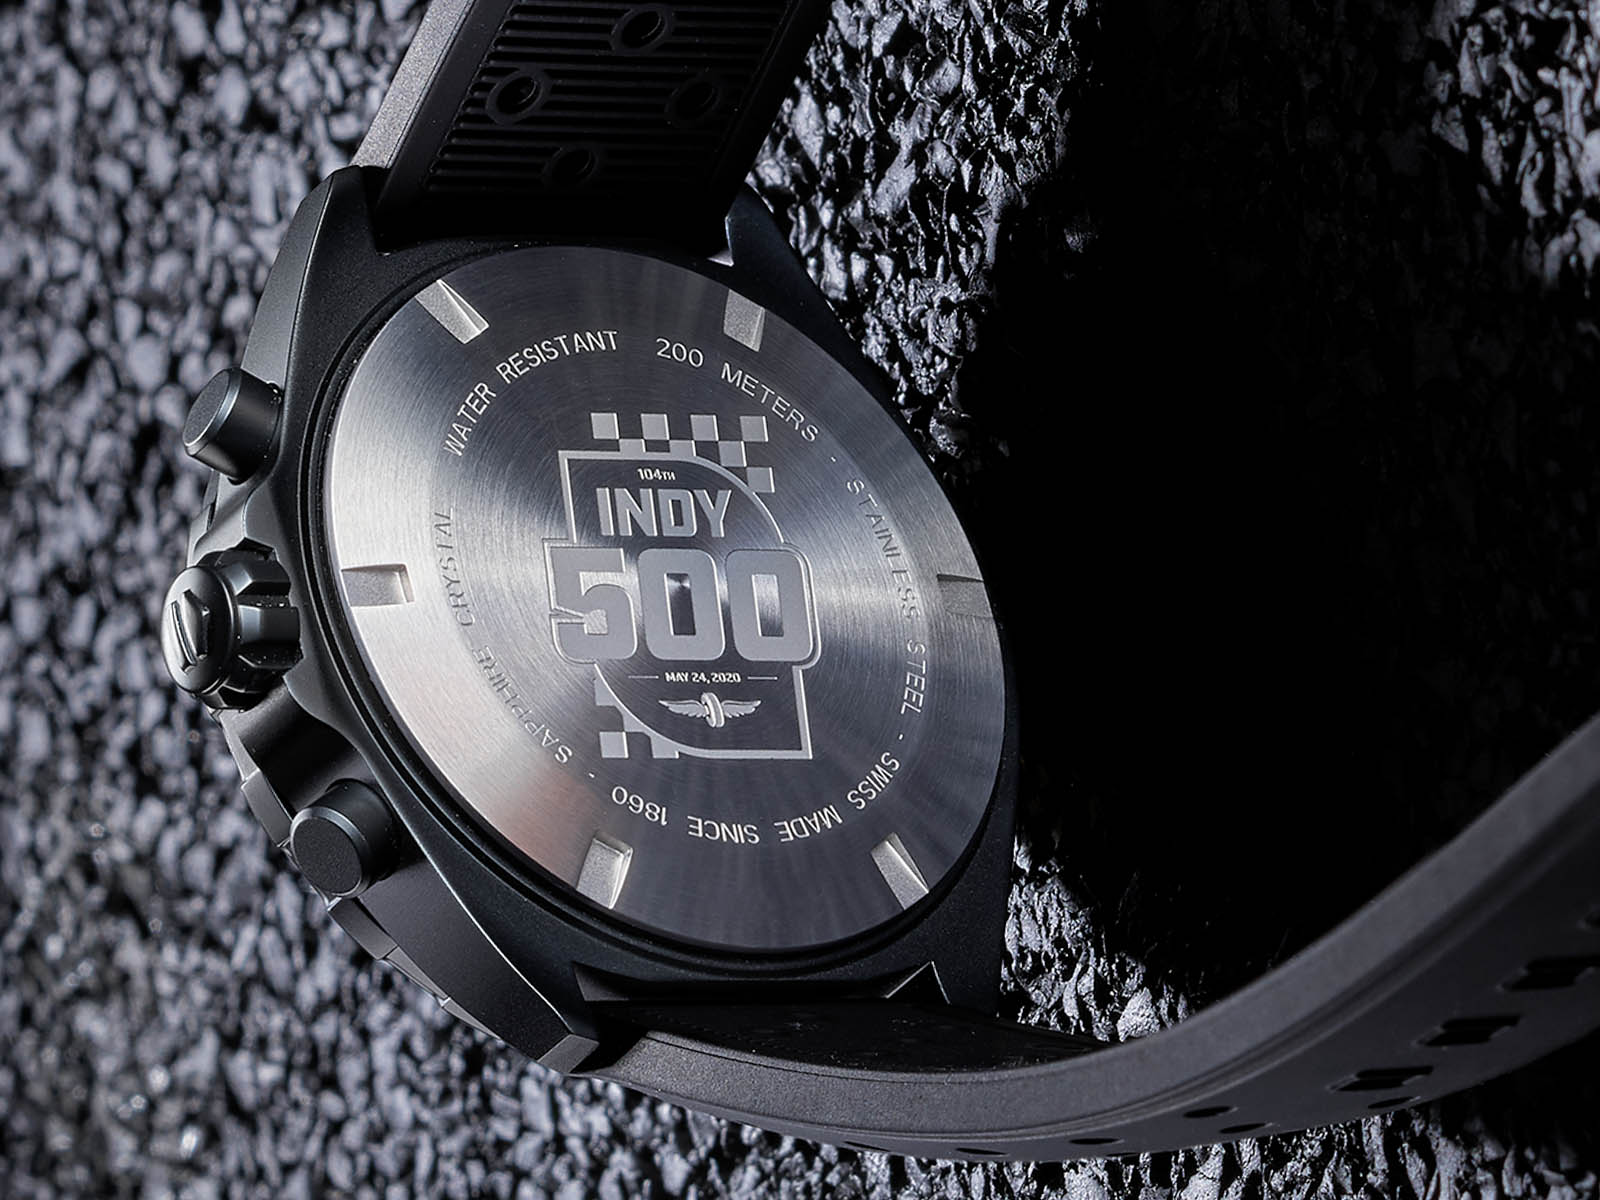 caz101ad-ft8024-tag-heuer-formula-1-indy-500-2020-special-edition-7.jpg